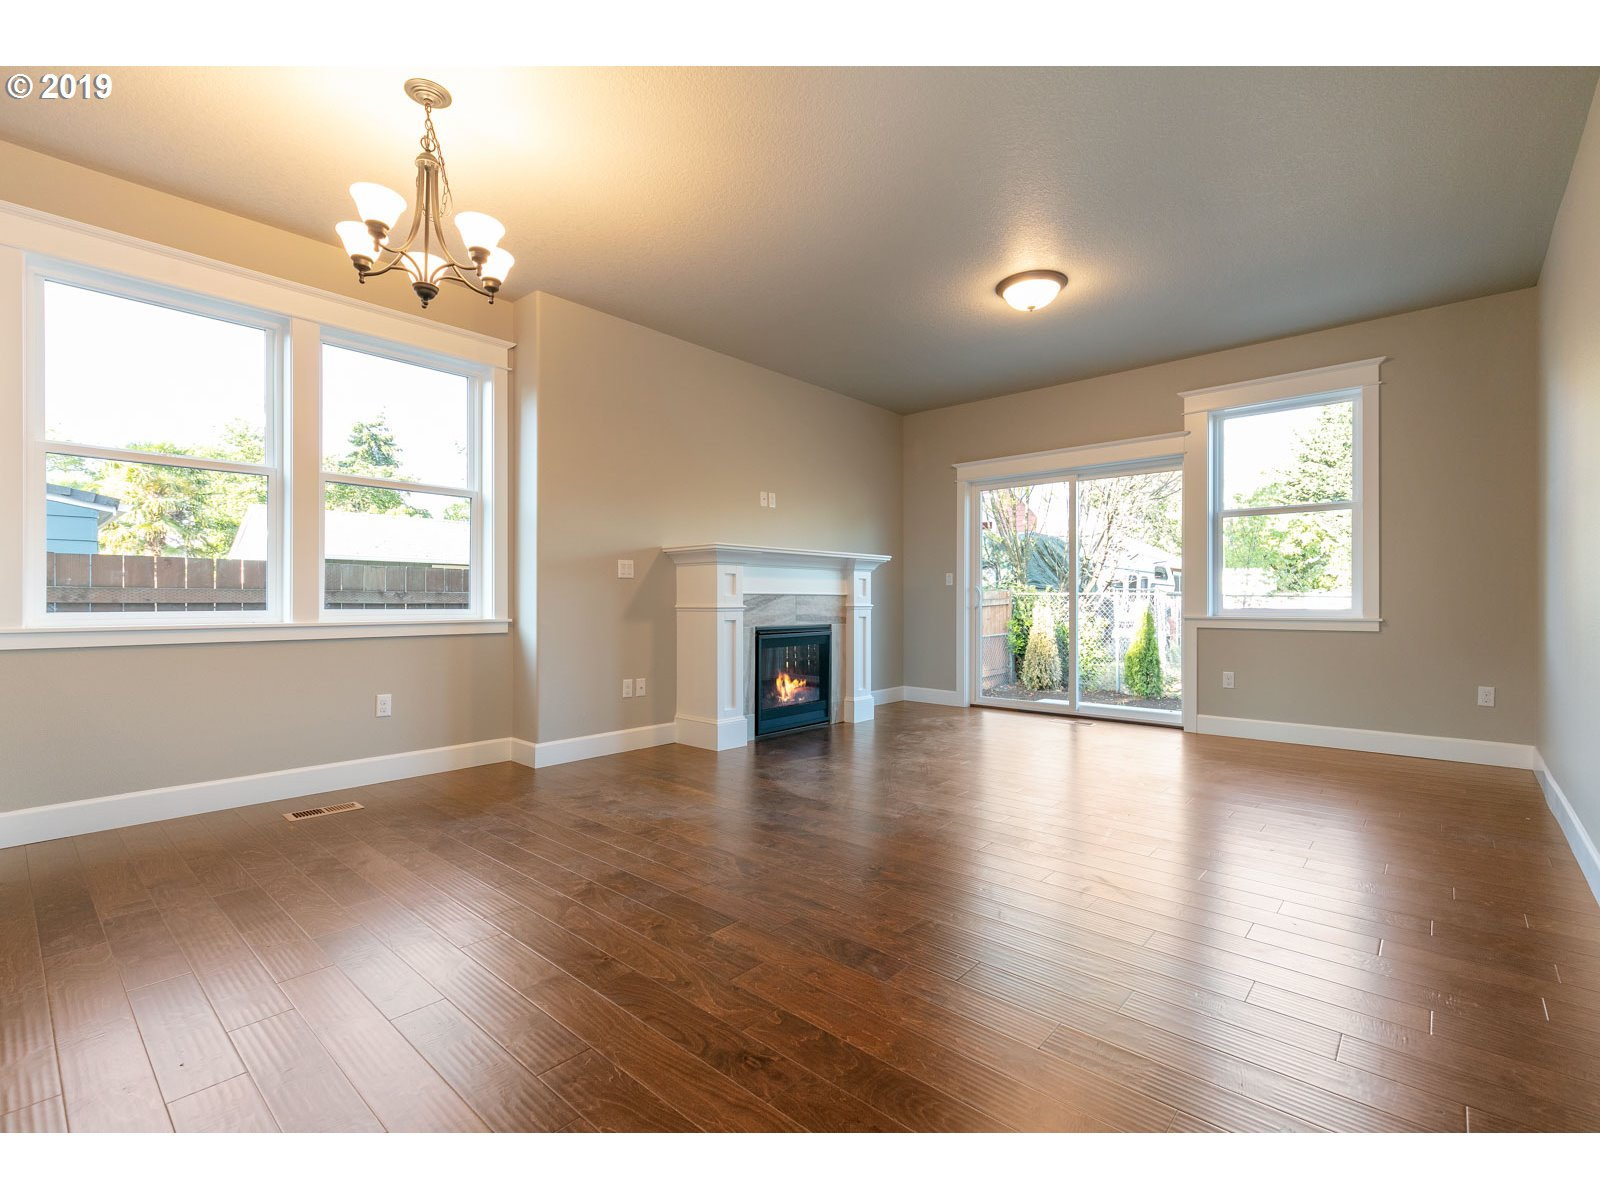 1577 sq. ft 3 bedrooms 2 bathrooms  House , Portland, OR